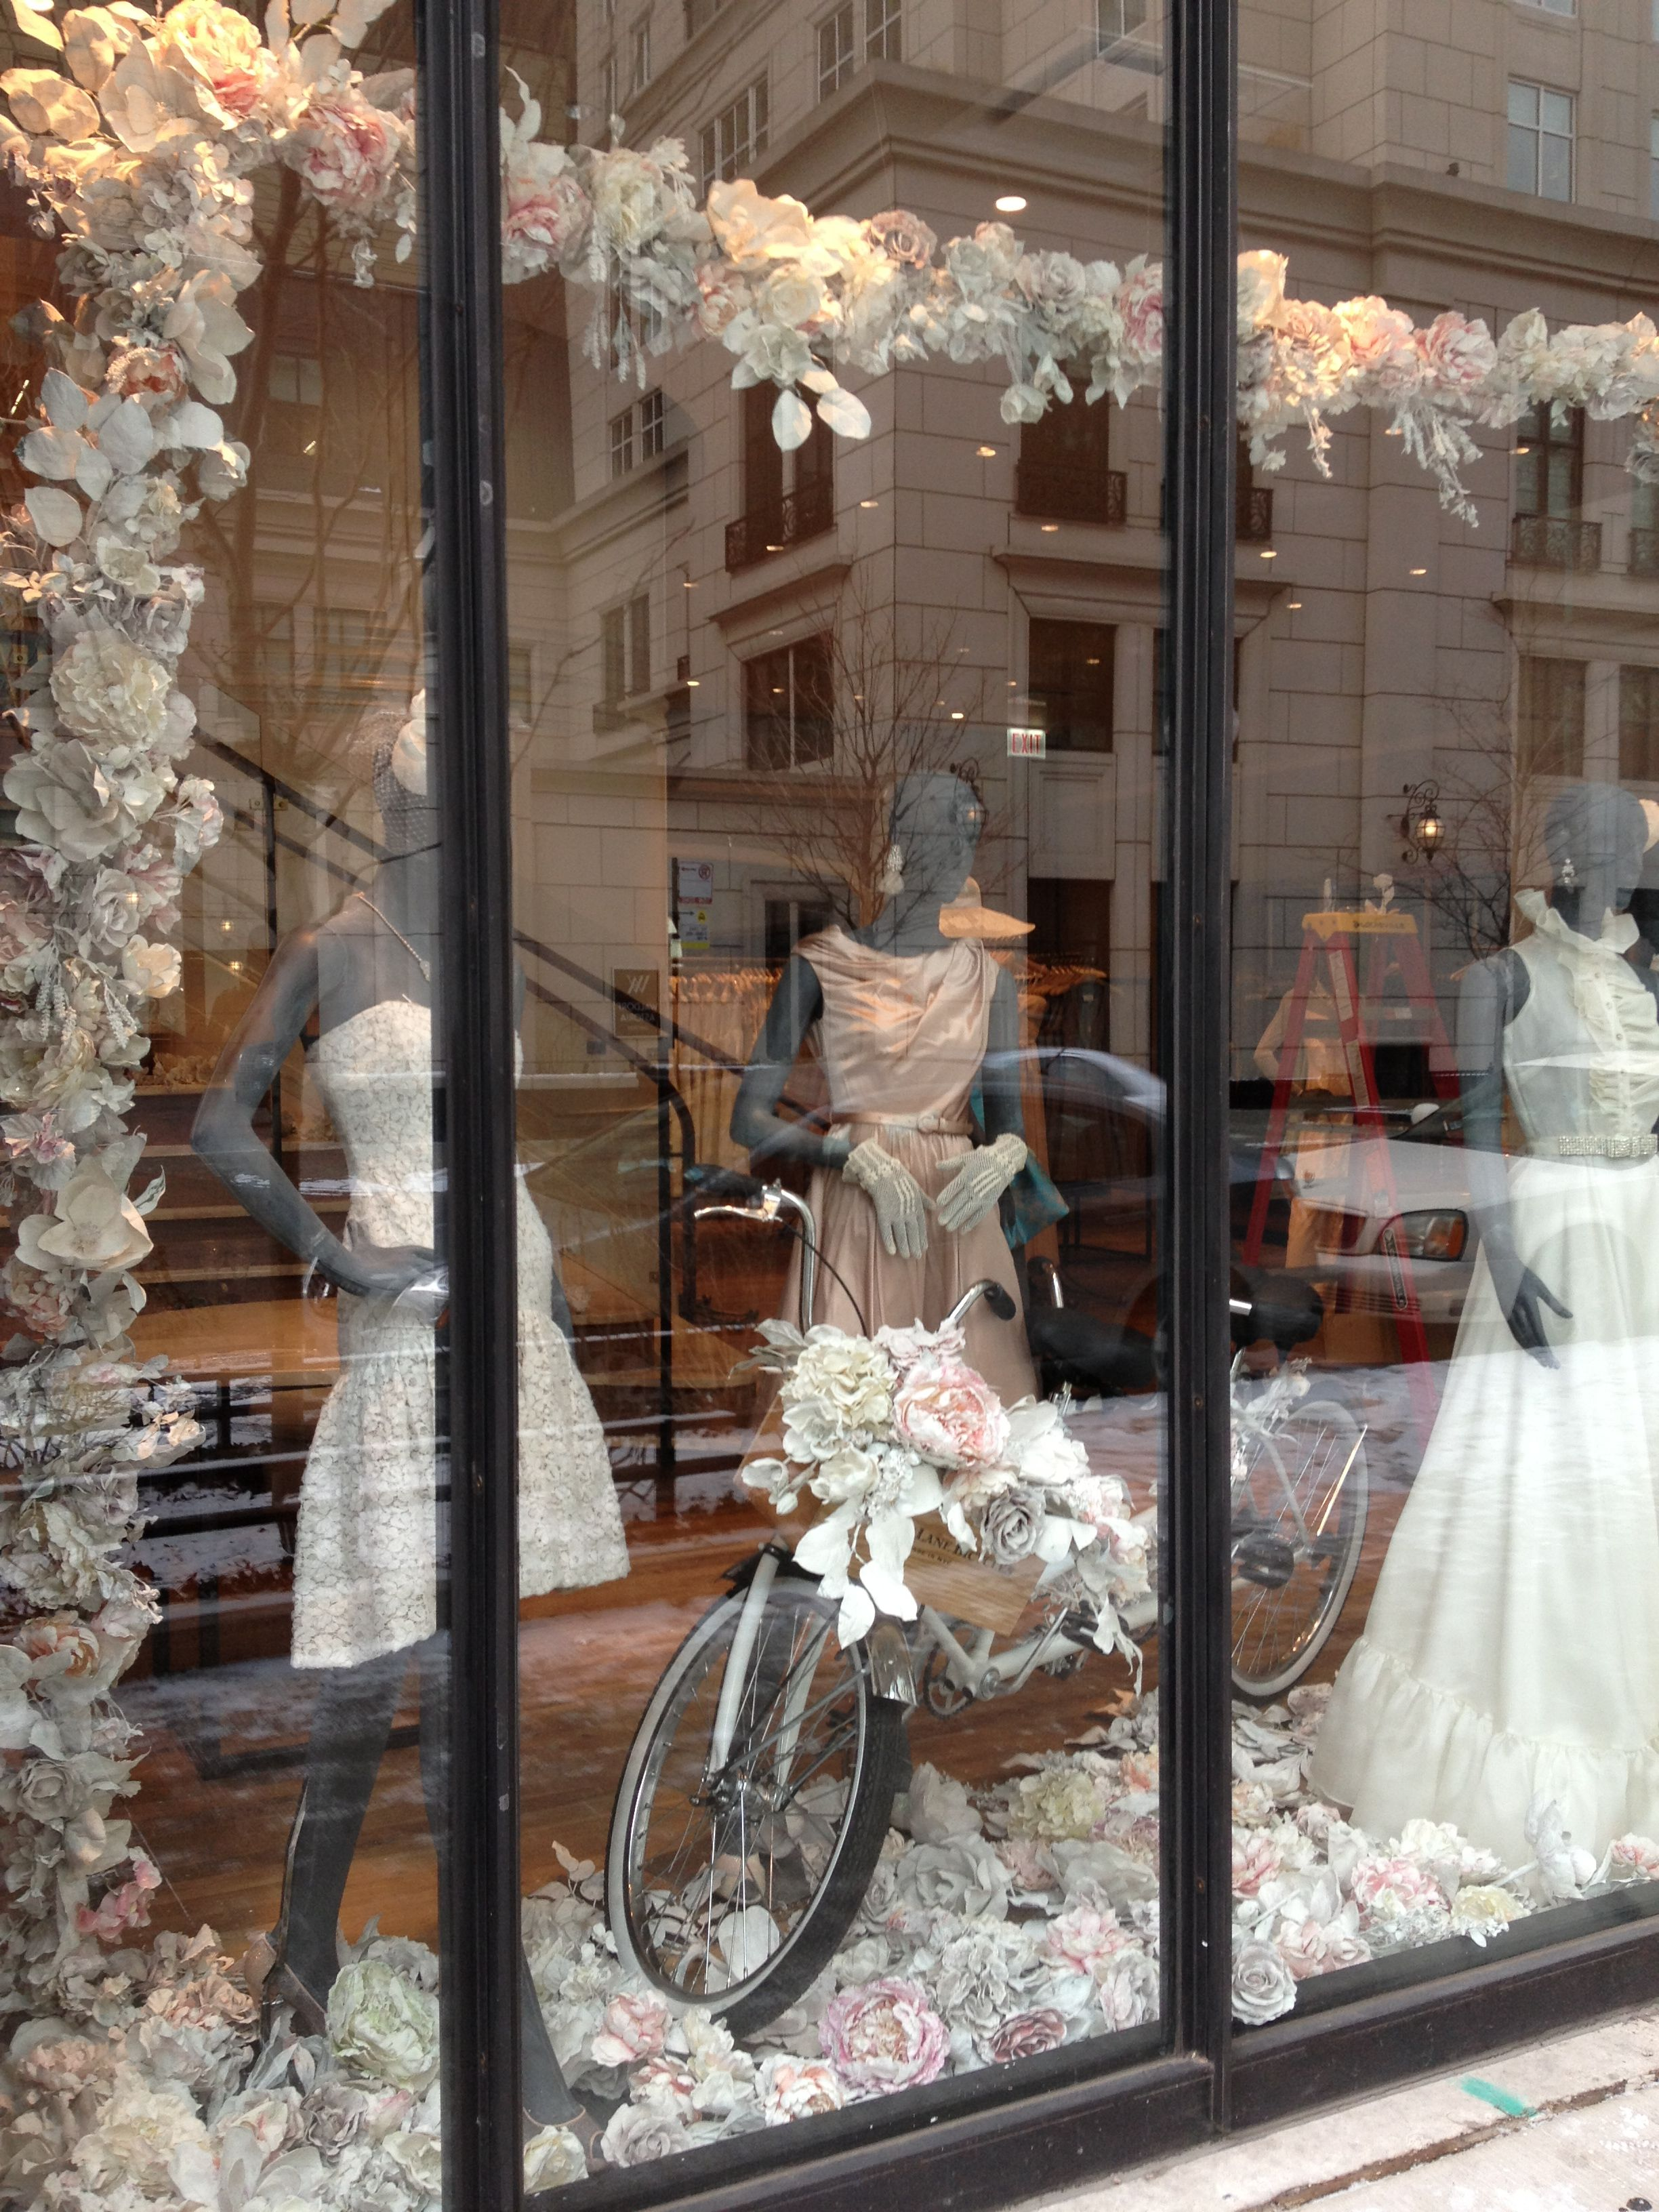 Window display ideas for jewelry  our houston storeus spring windows  jewelry display ideas